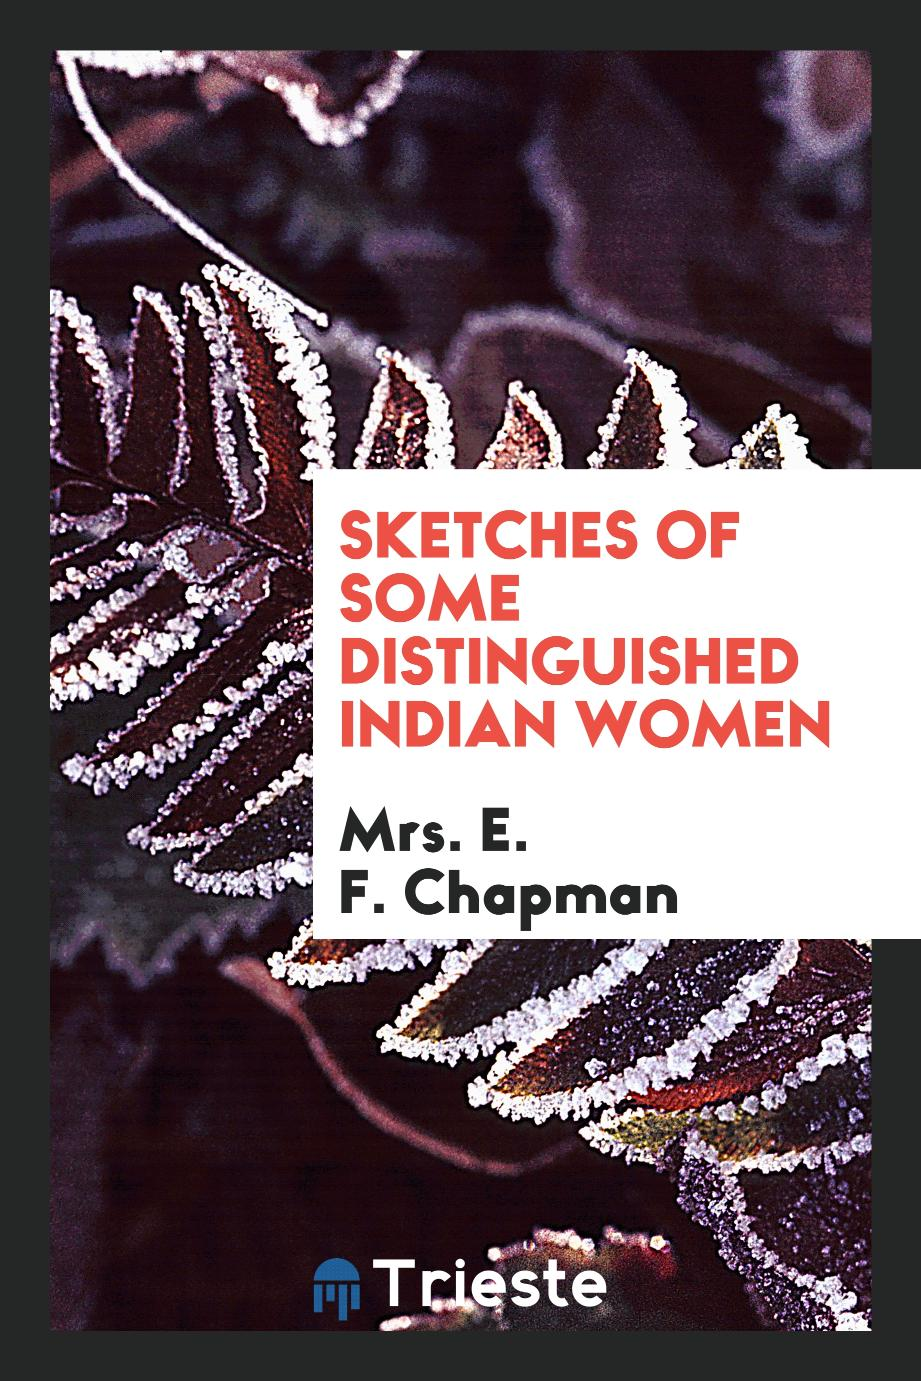 Mrs. E. F. Chapman - Sketches of Some Distinguished Indian Women